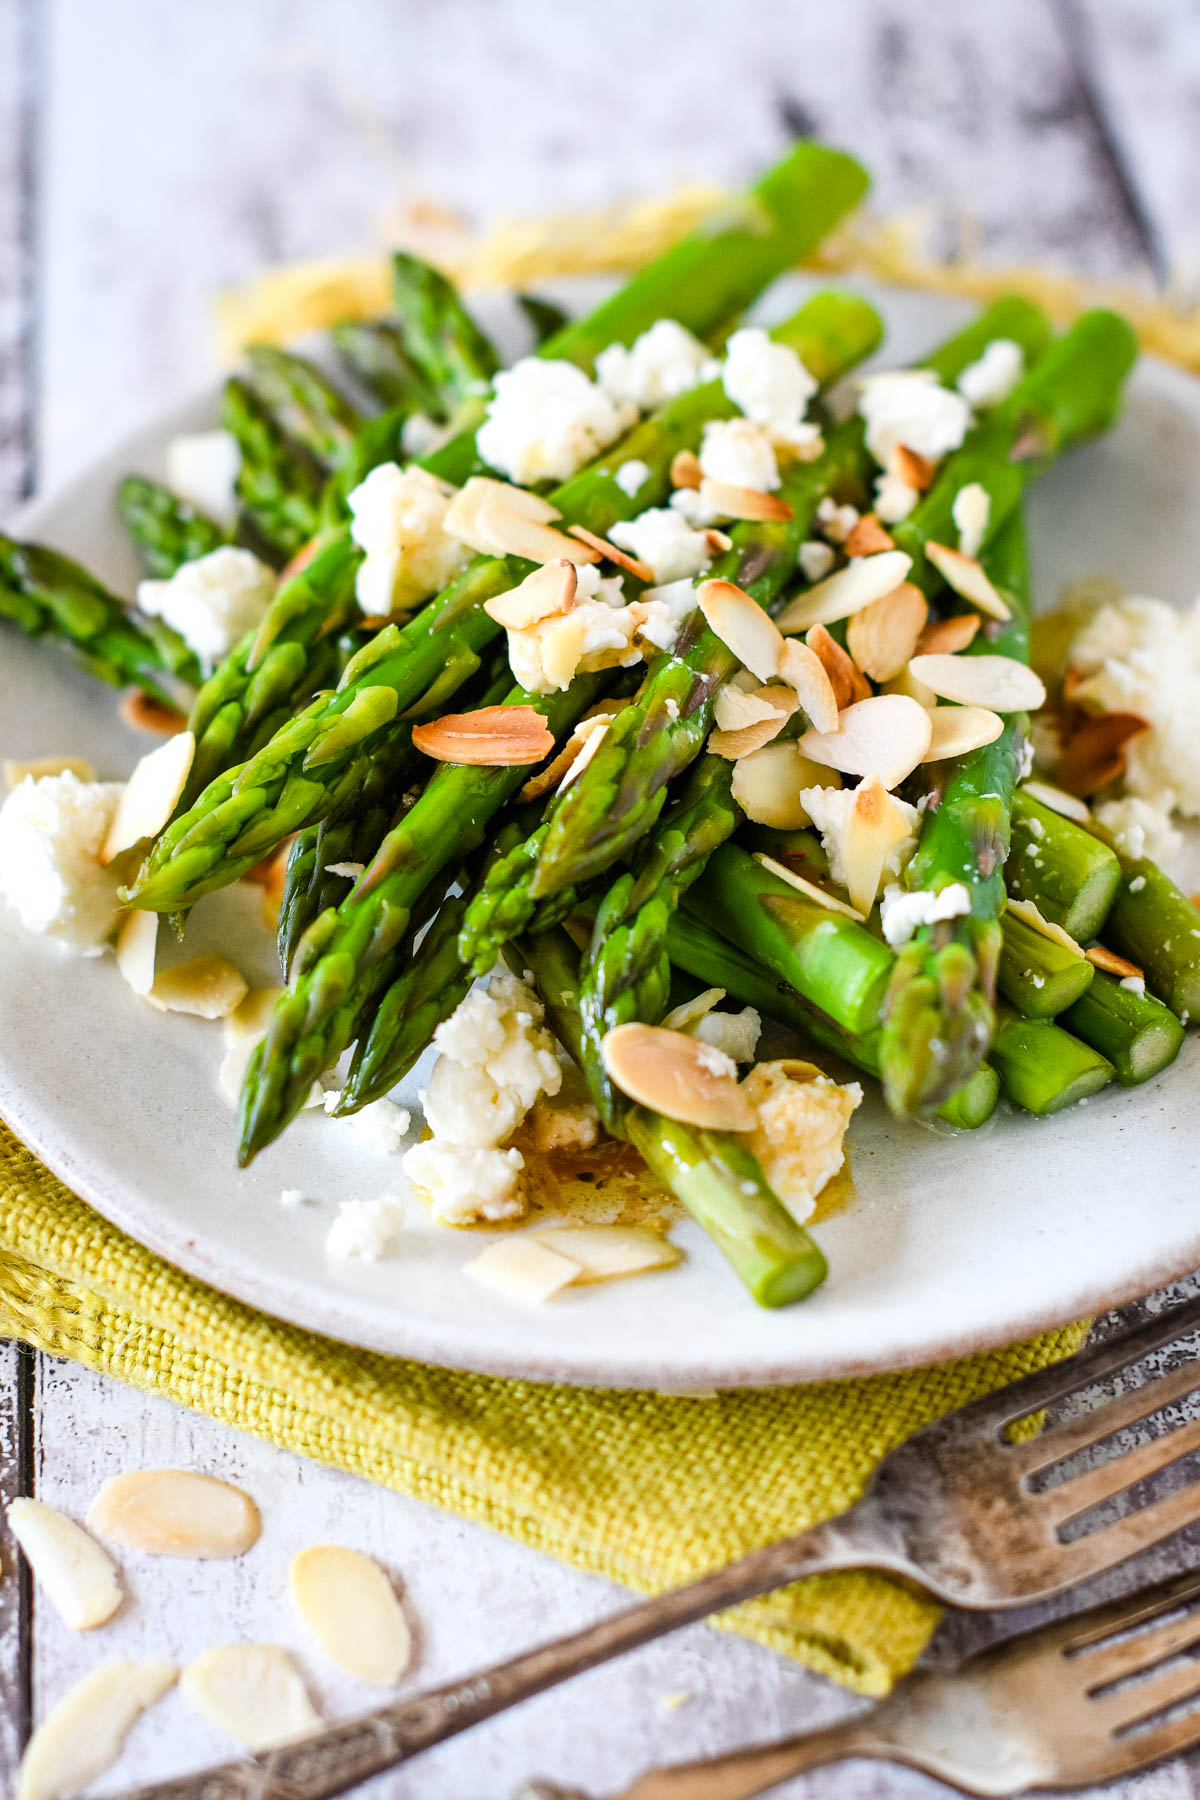 asparagus feta and almonds on white plate with fork at side